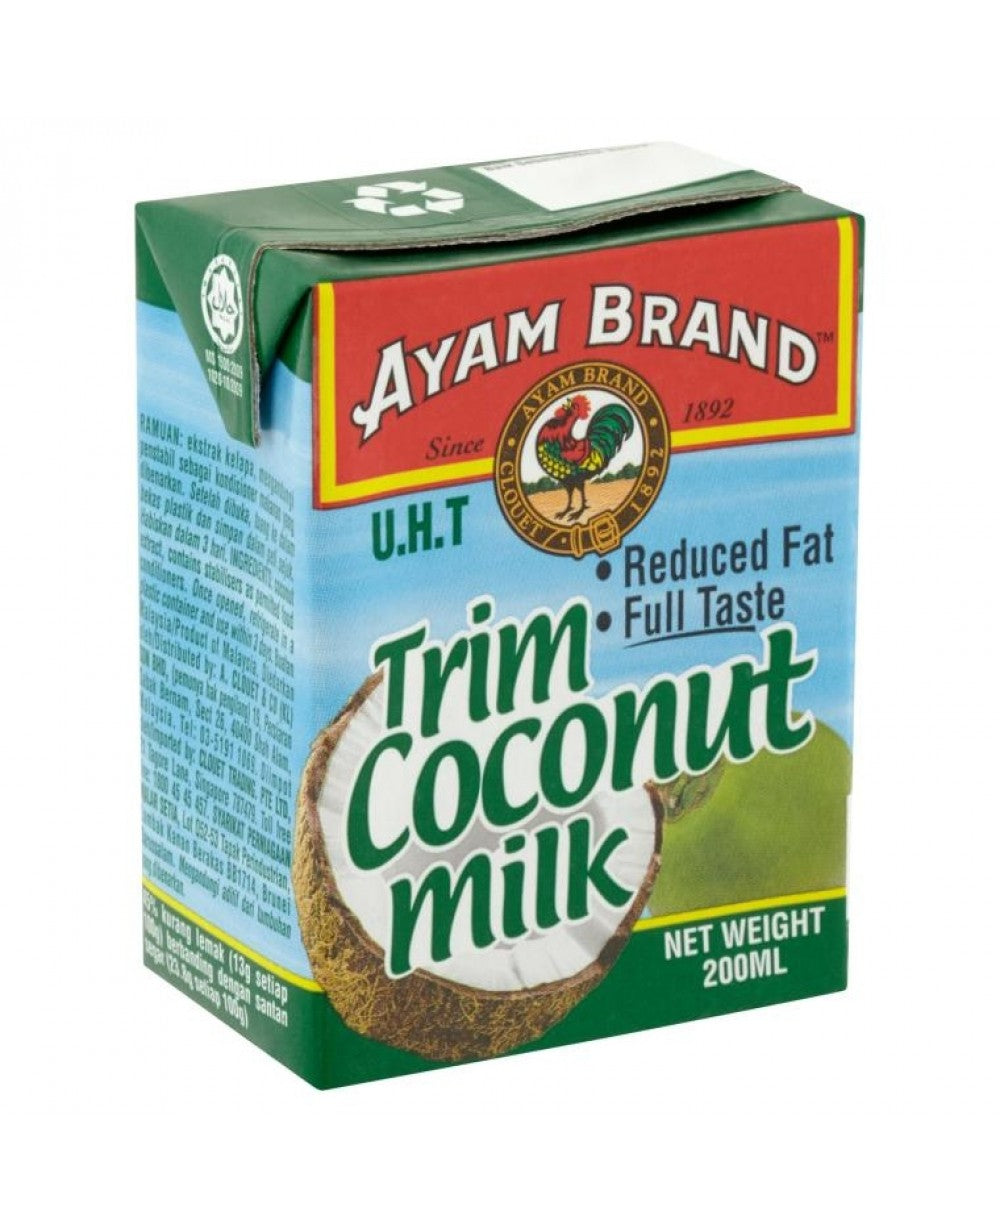 Ayam Brand - Trim Coconut Milk (200ml)